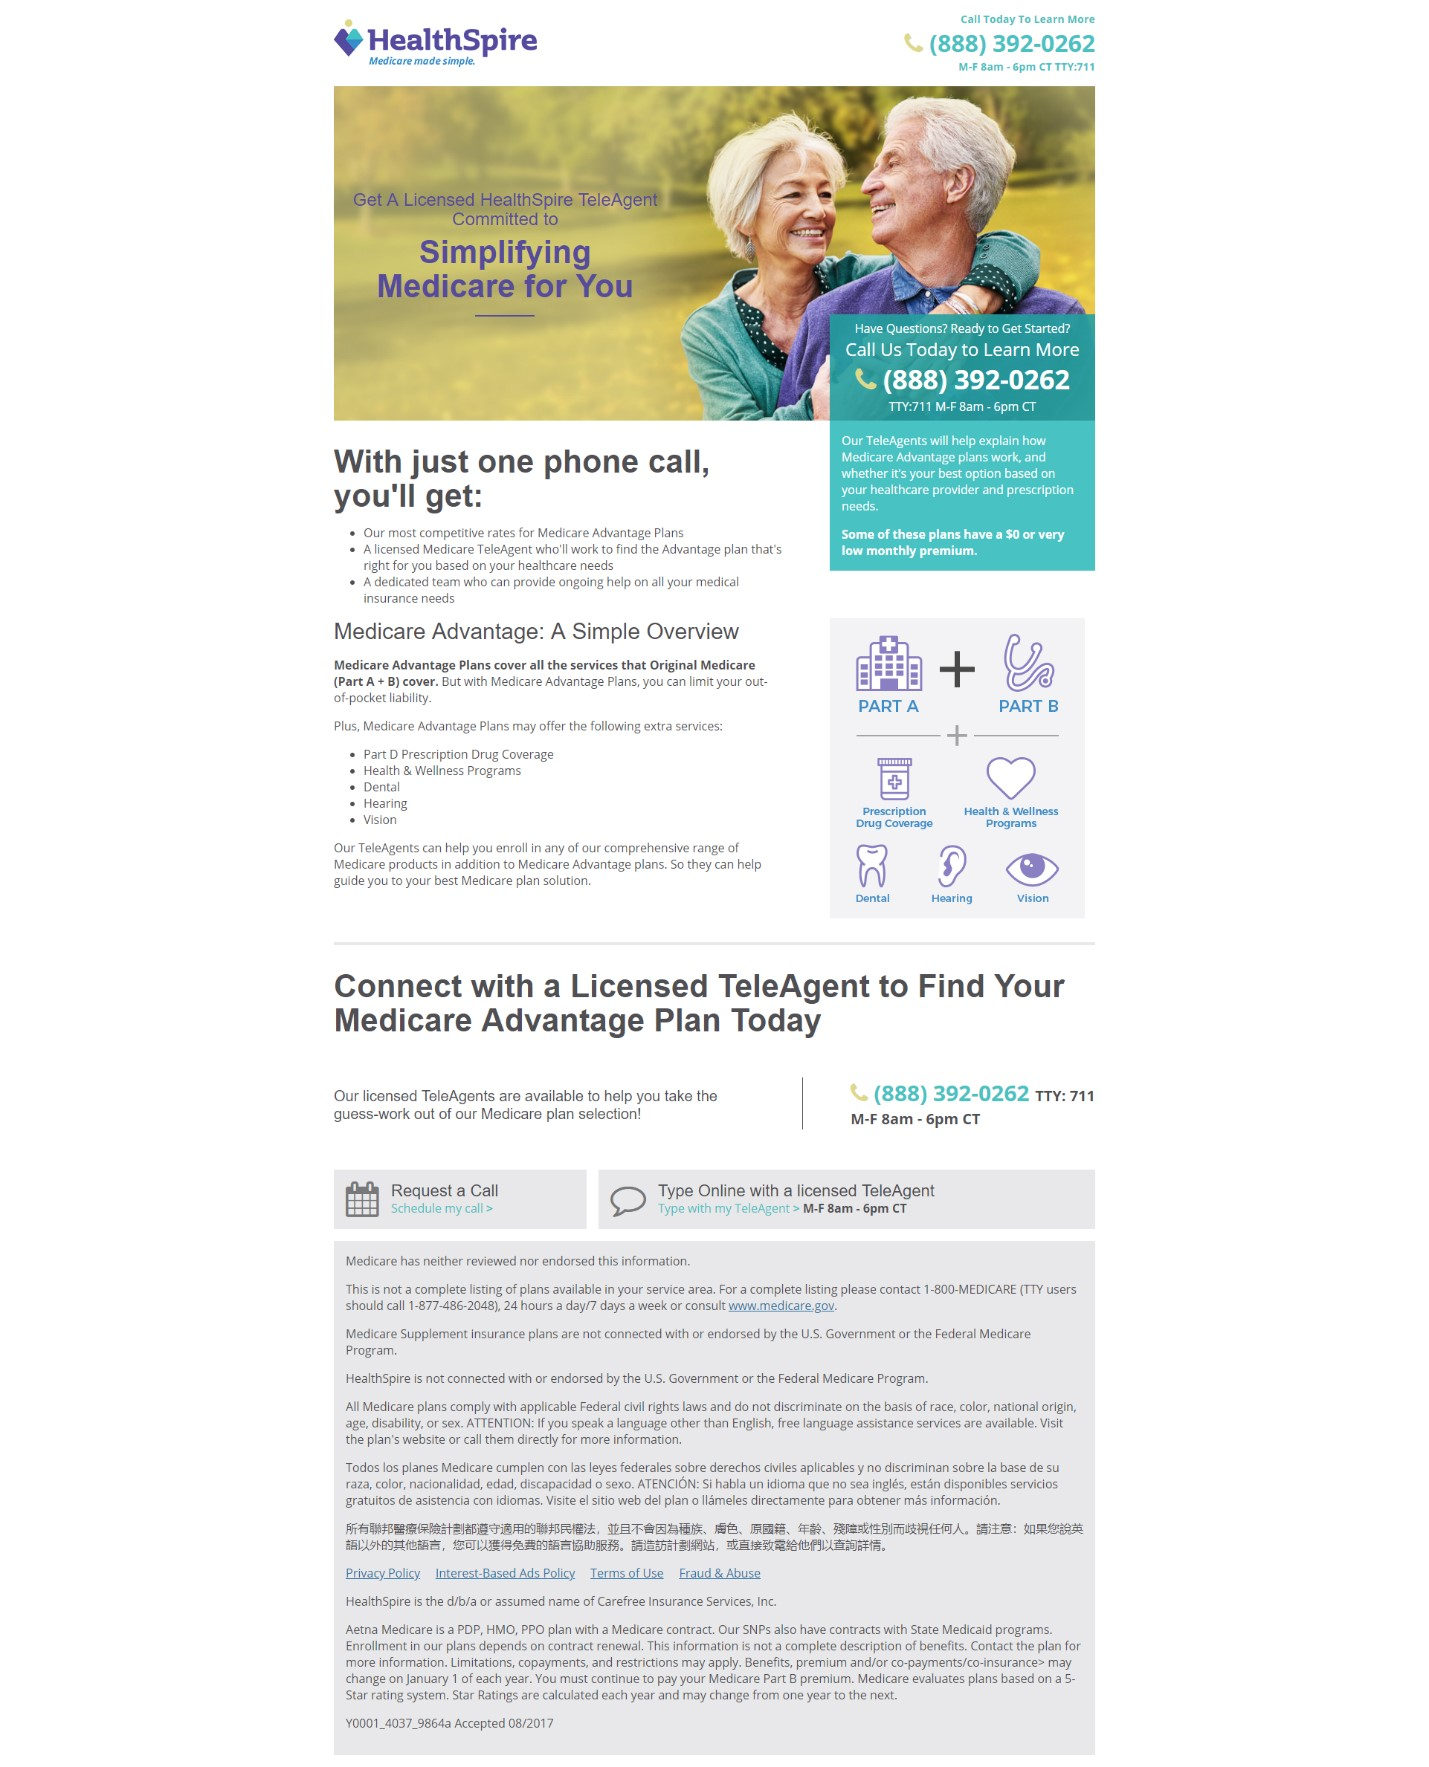 Landing Page Optimization: How Aetna's HealthSpire startup generated